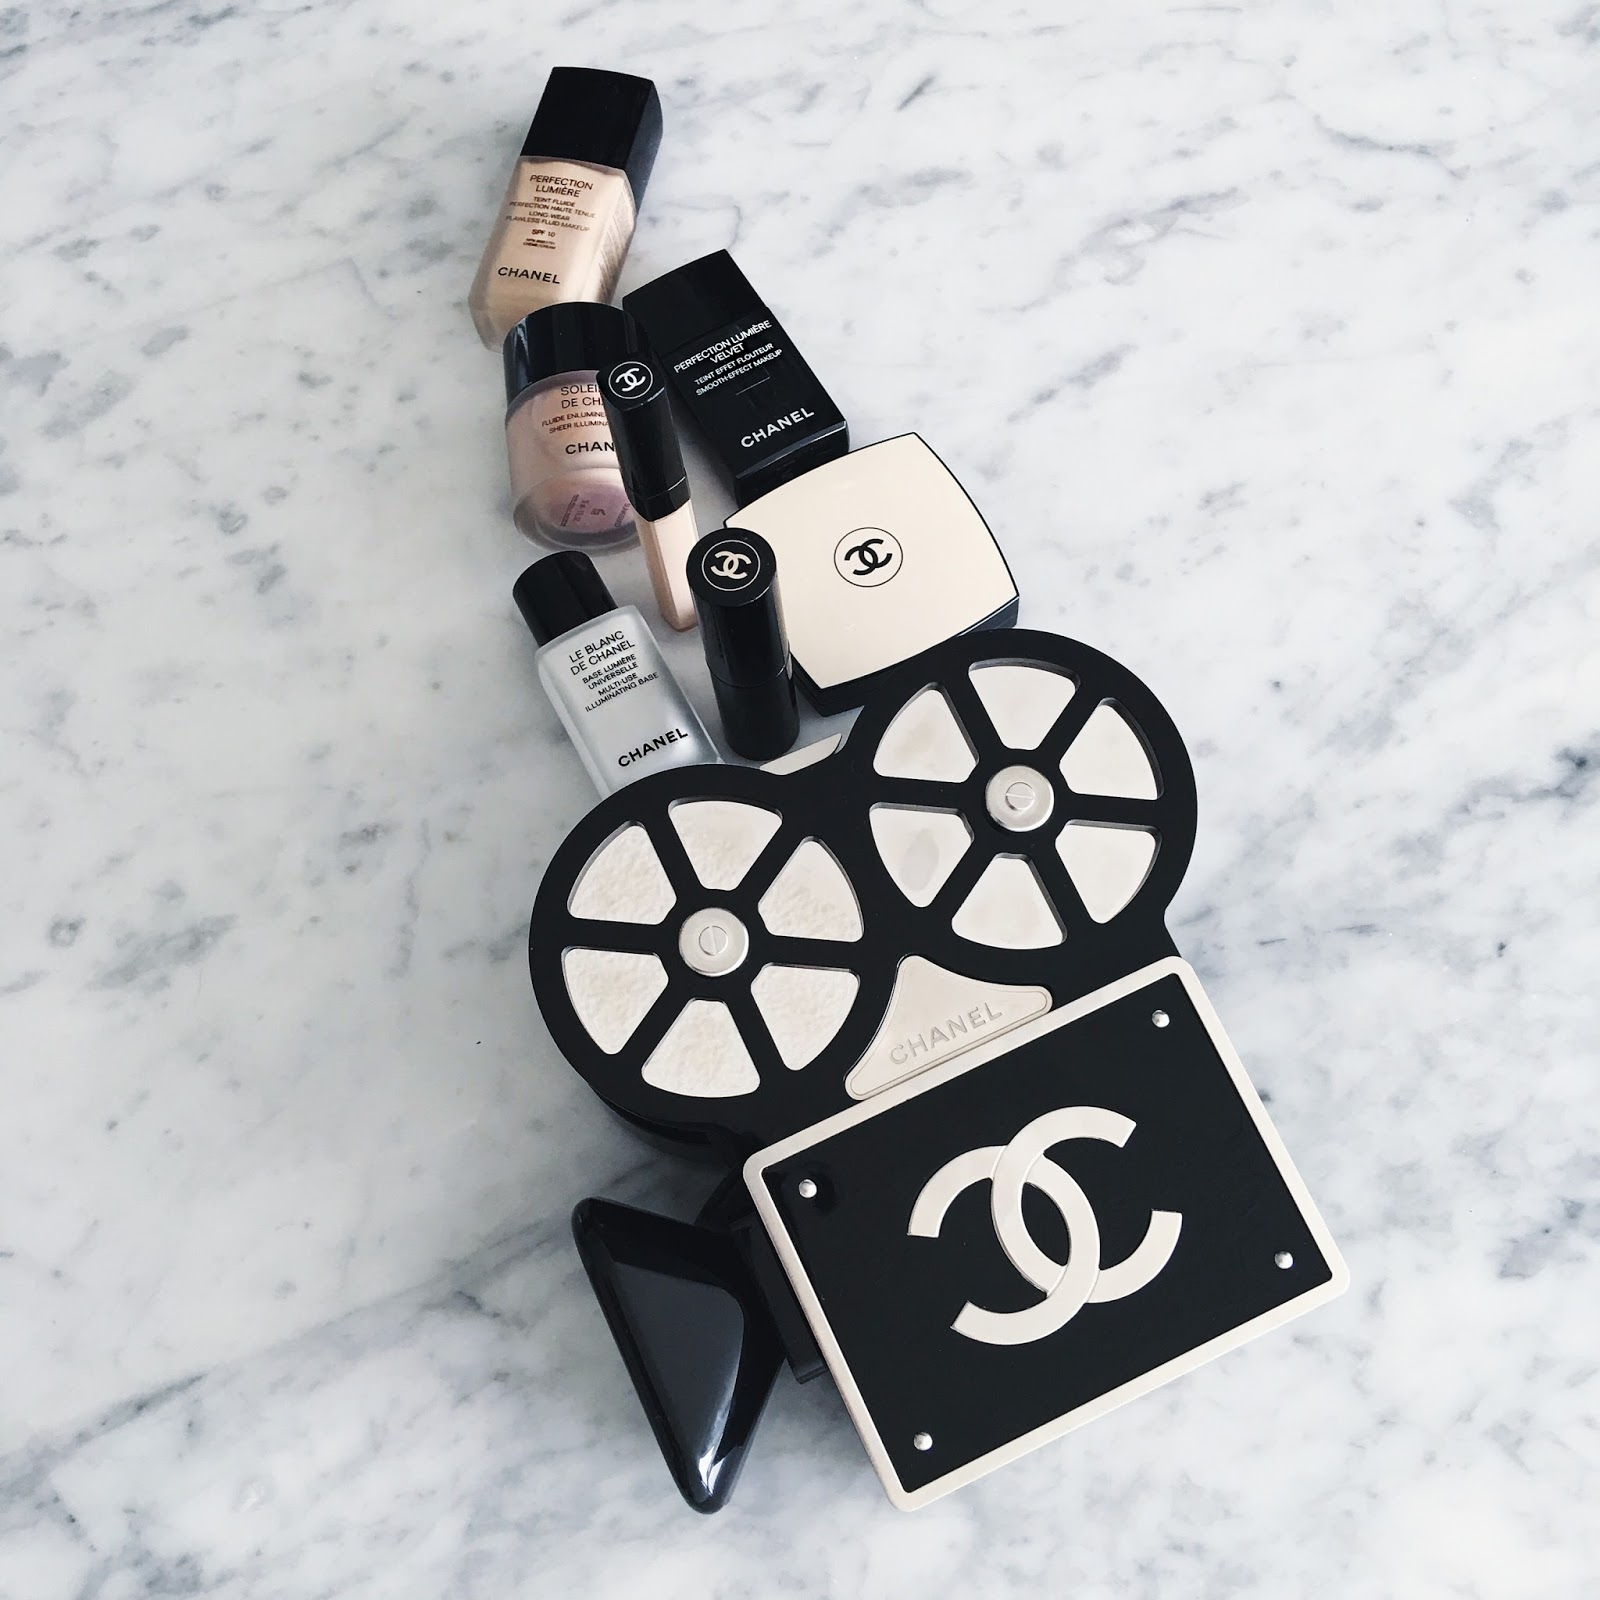 Chanel Beauty Jaysrut Le Blanc De Makeup Base Perfection Lumiere Smooth Effect For Skin Correcteur Concealer Eyes Illumating